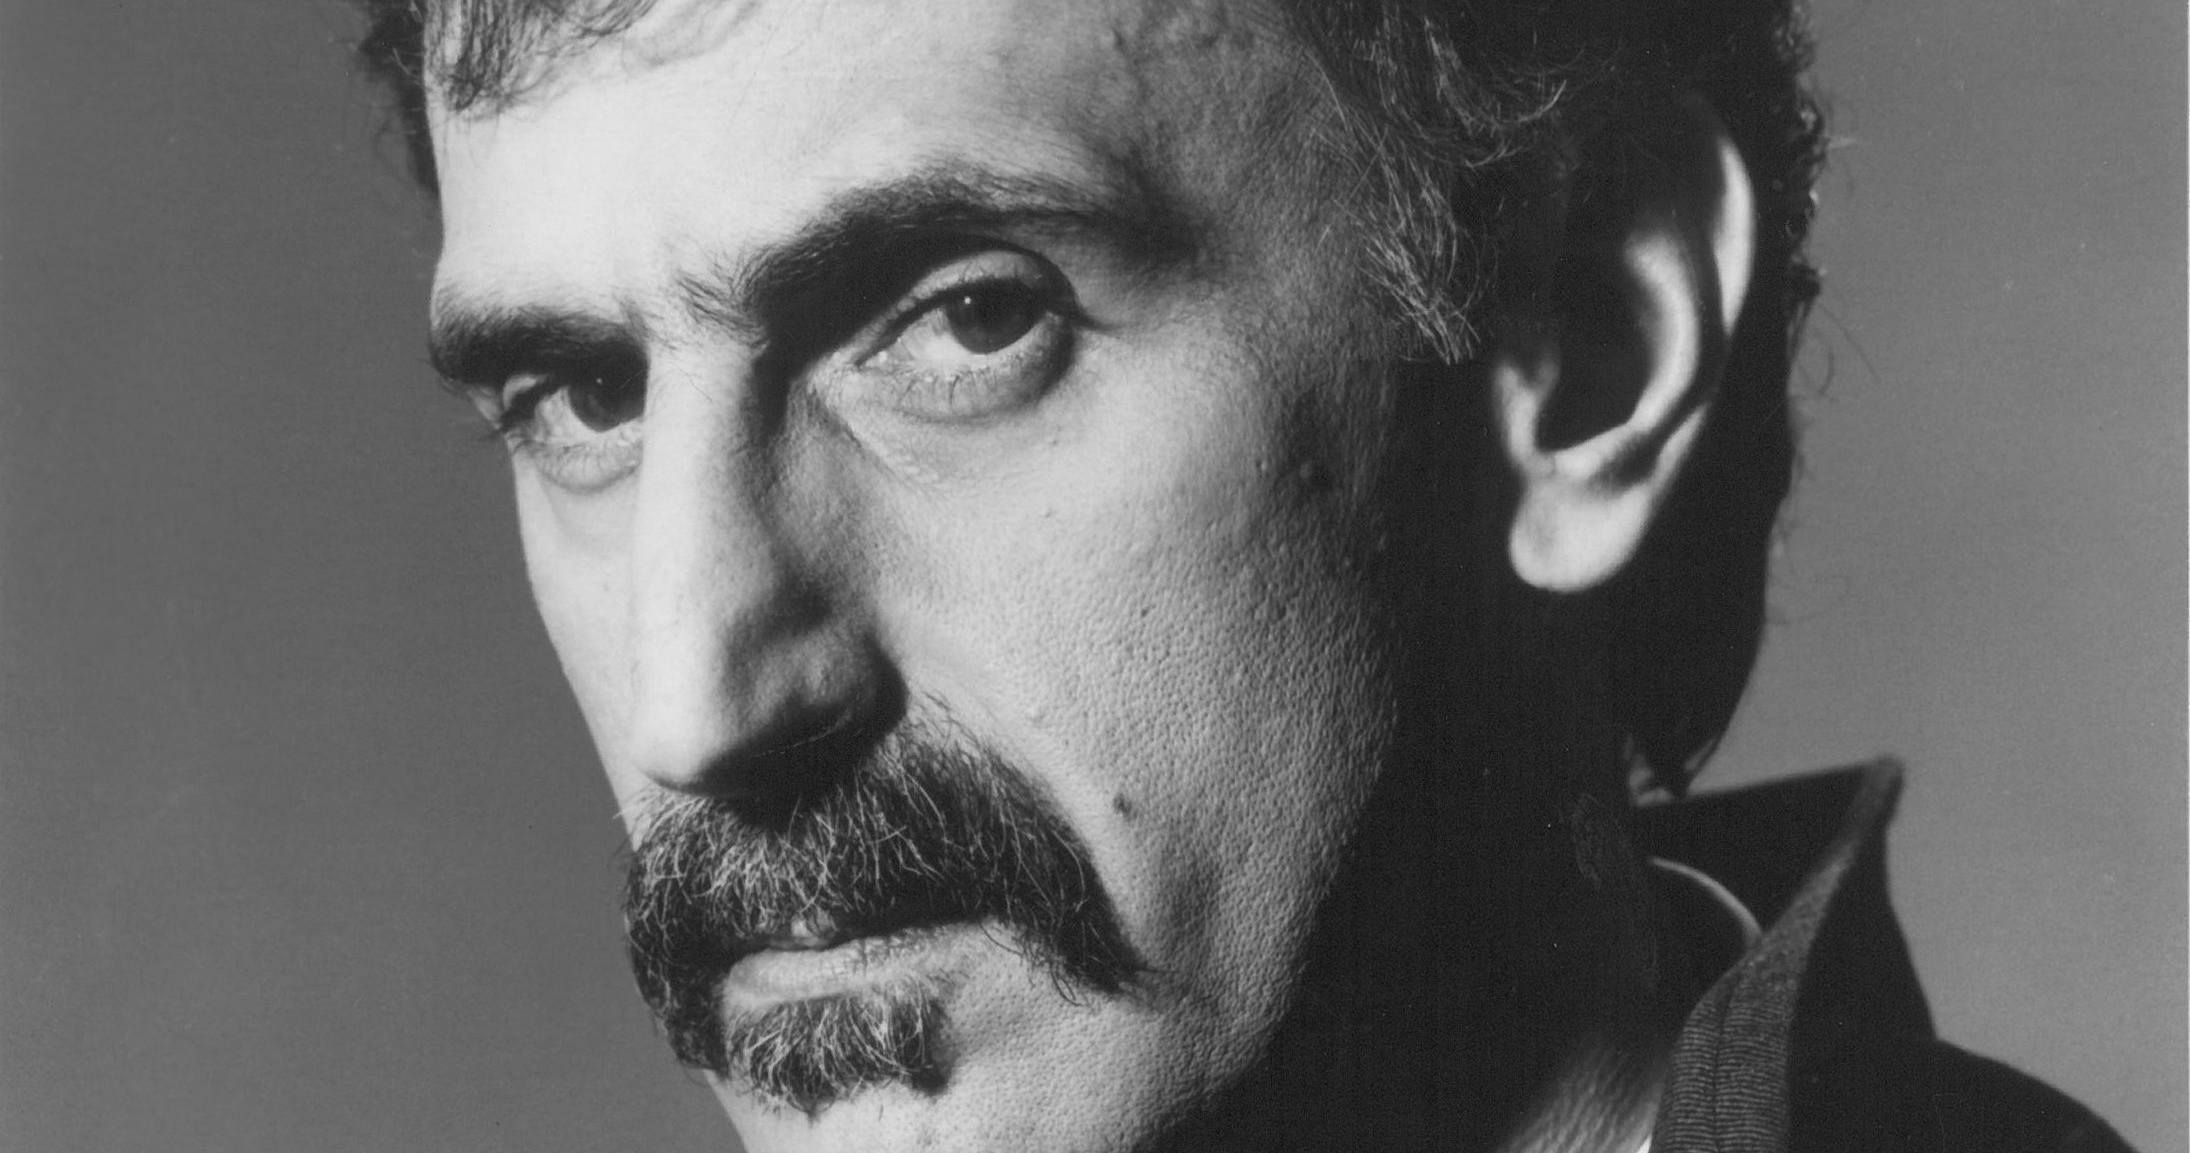 Meaningful Quotes Wallpaper Serious Beneath The Surface Musica Nova Plays Frank Zappa